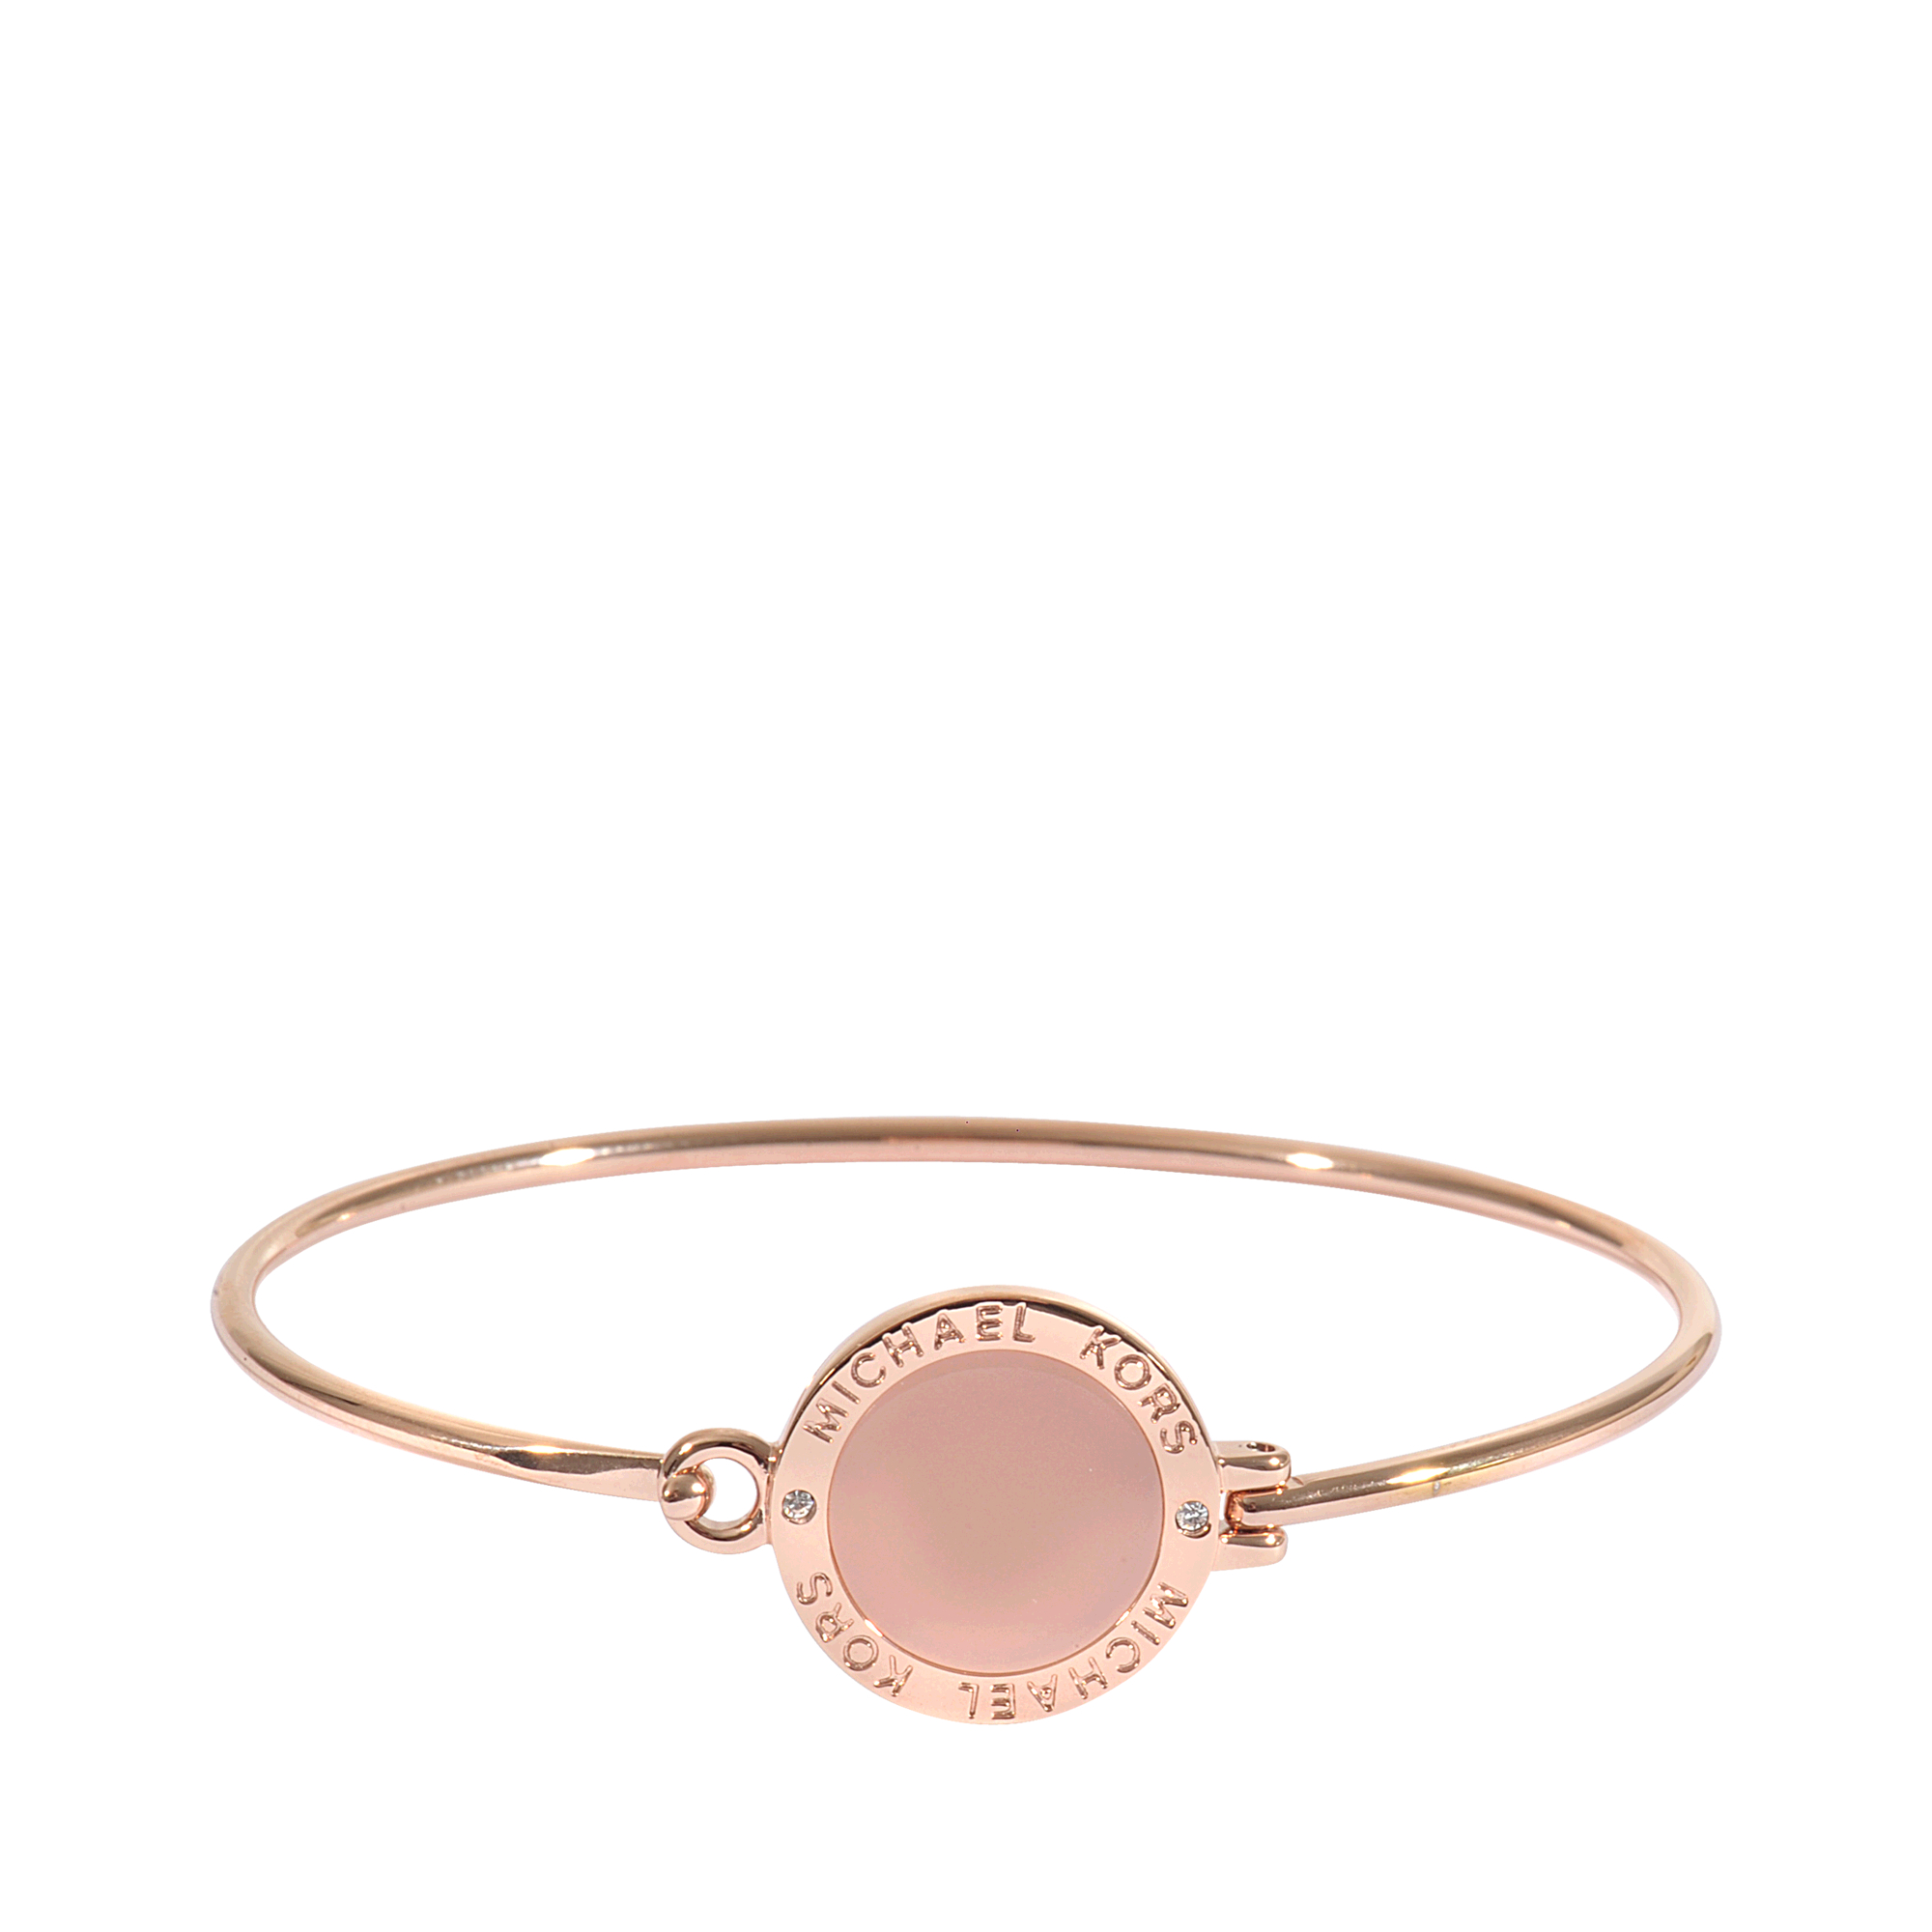 Rose Gold Armband Lyst Michael Kors Armband Rose Gold Blush In Metallic